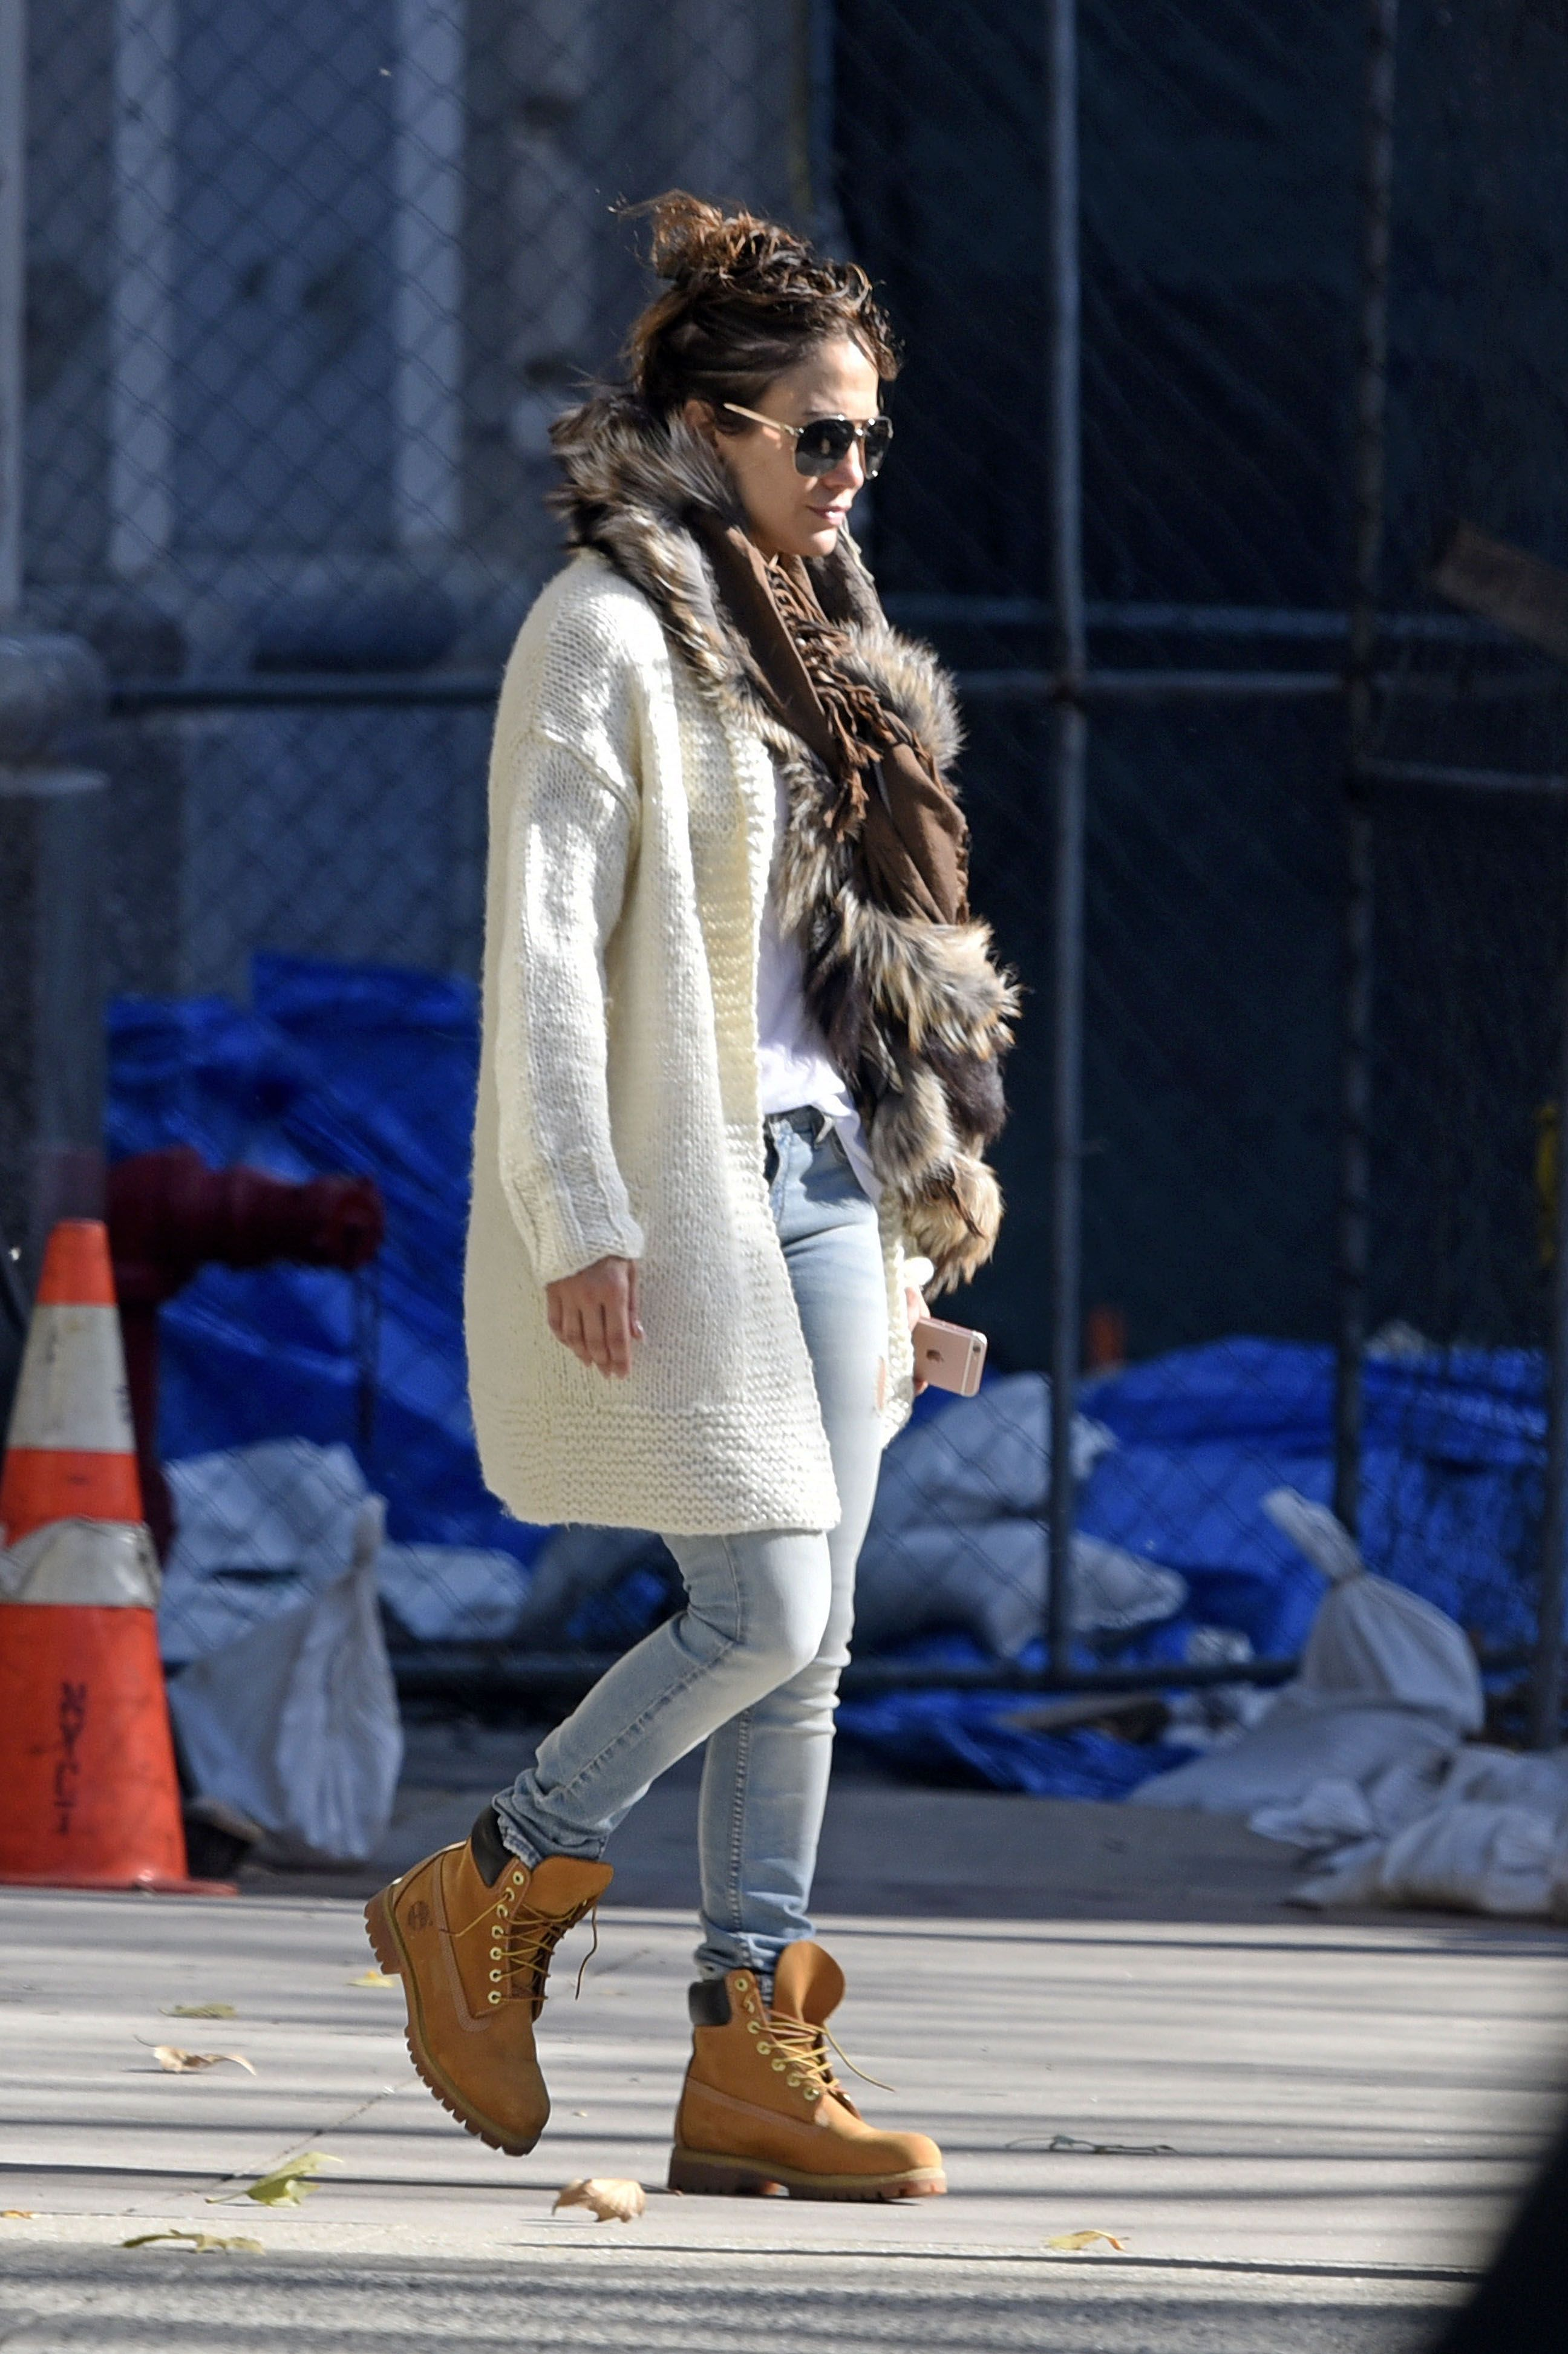 67efa8ecd Jennifer Lopez in... what else? @timberland Classics, available with  #free2dayshipping for @shoprunner members